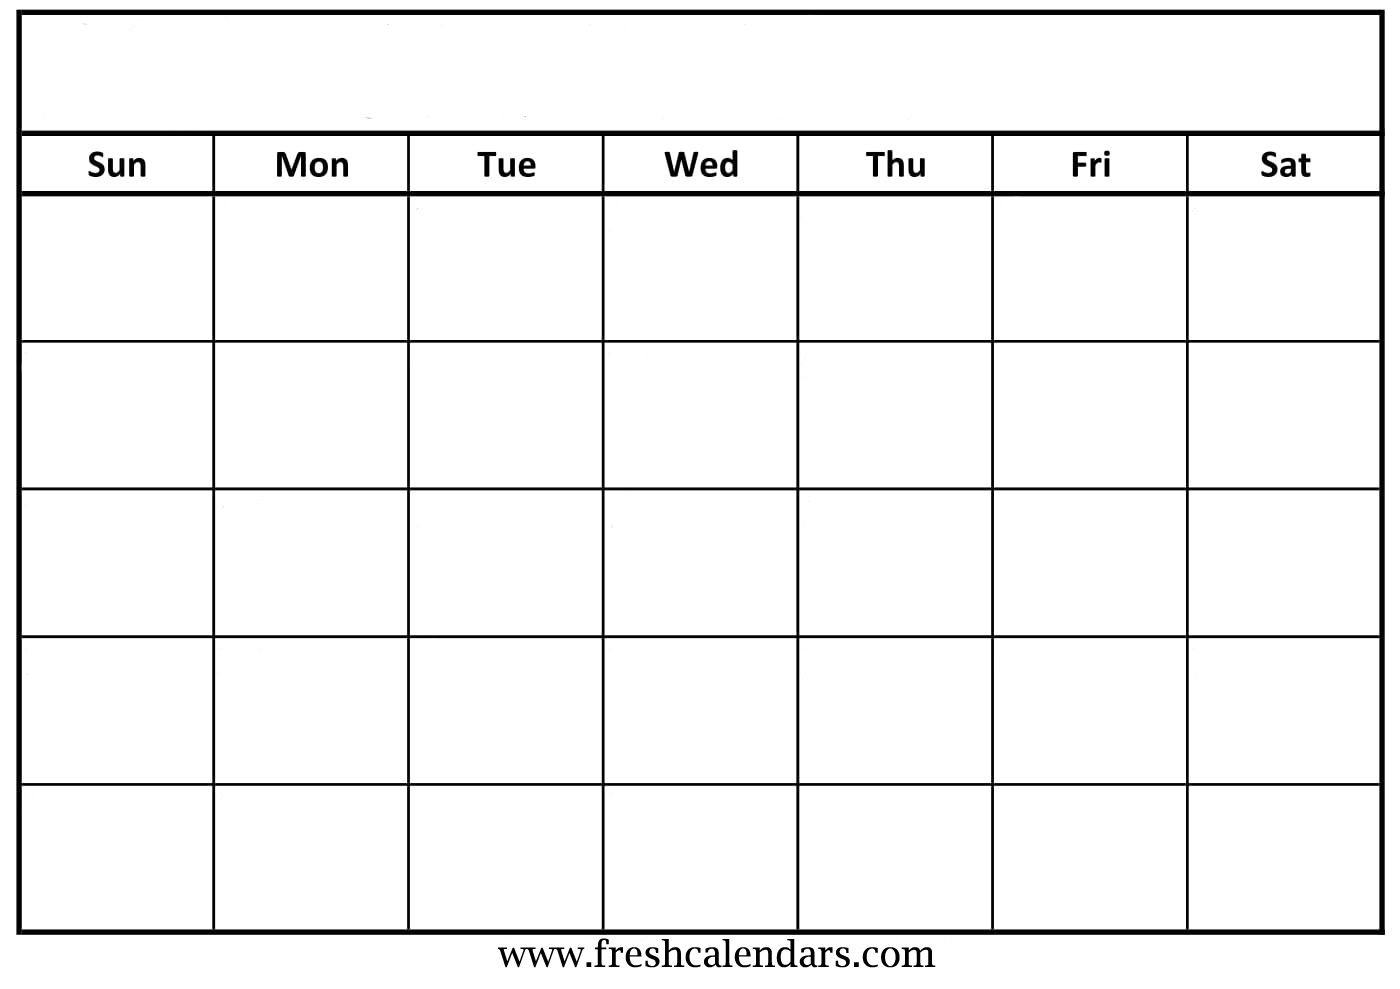 Free Printable Blank Calendar 2020 Free Calendars To Fill Out And Print